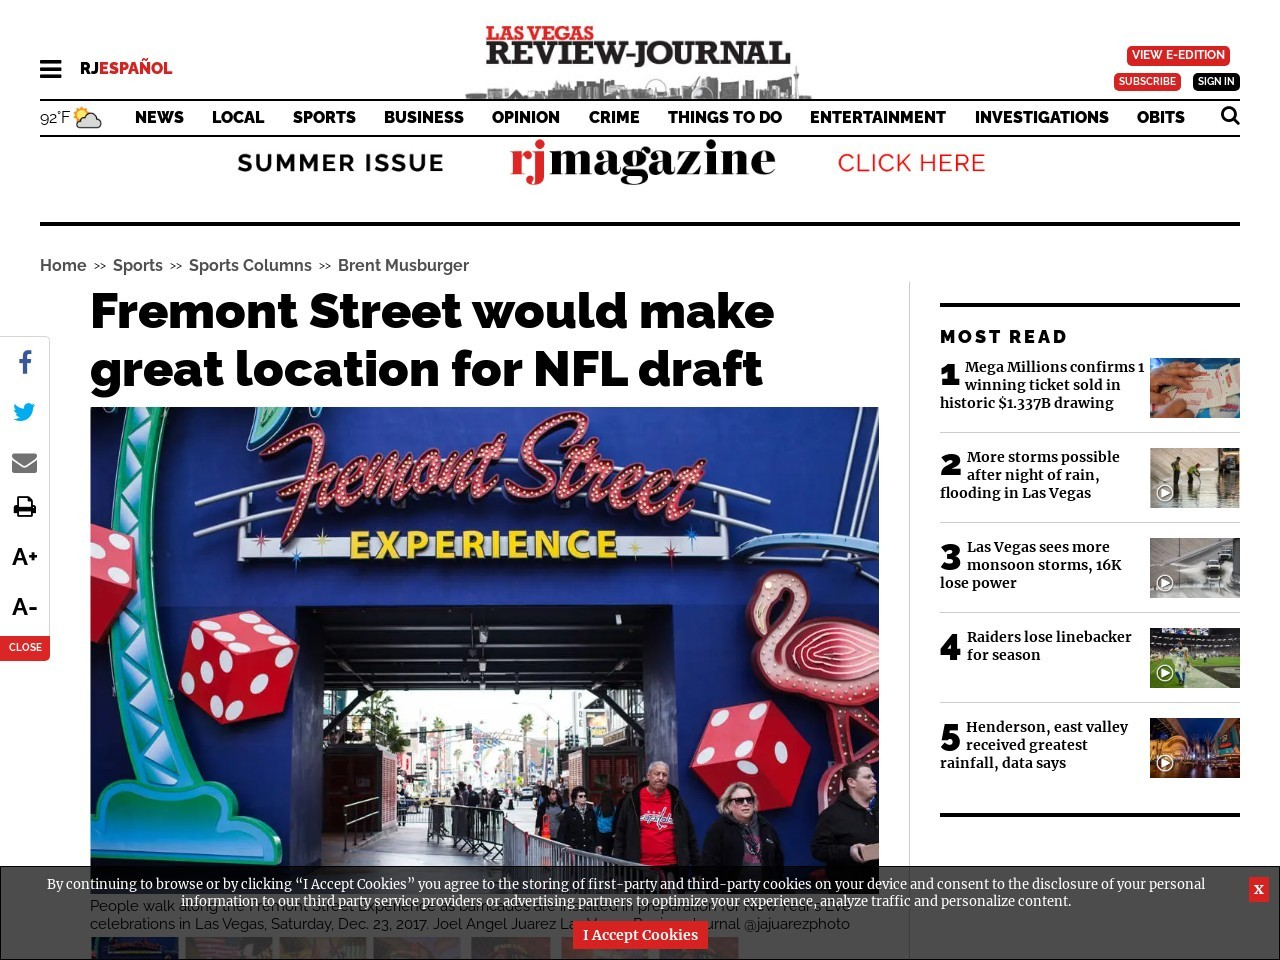 Fremont Street would make great location for NFL draft